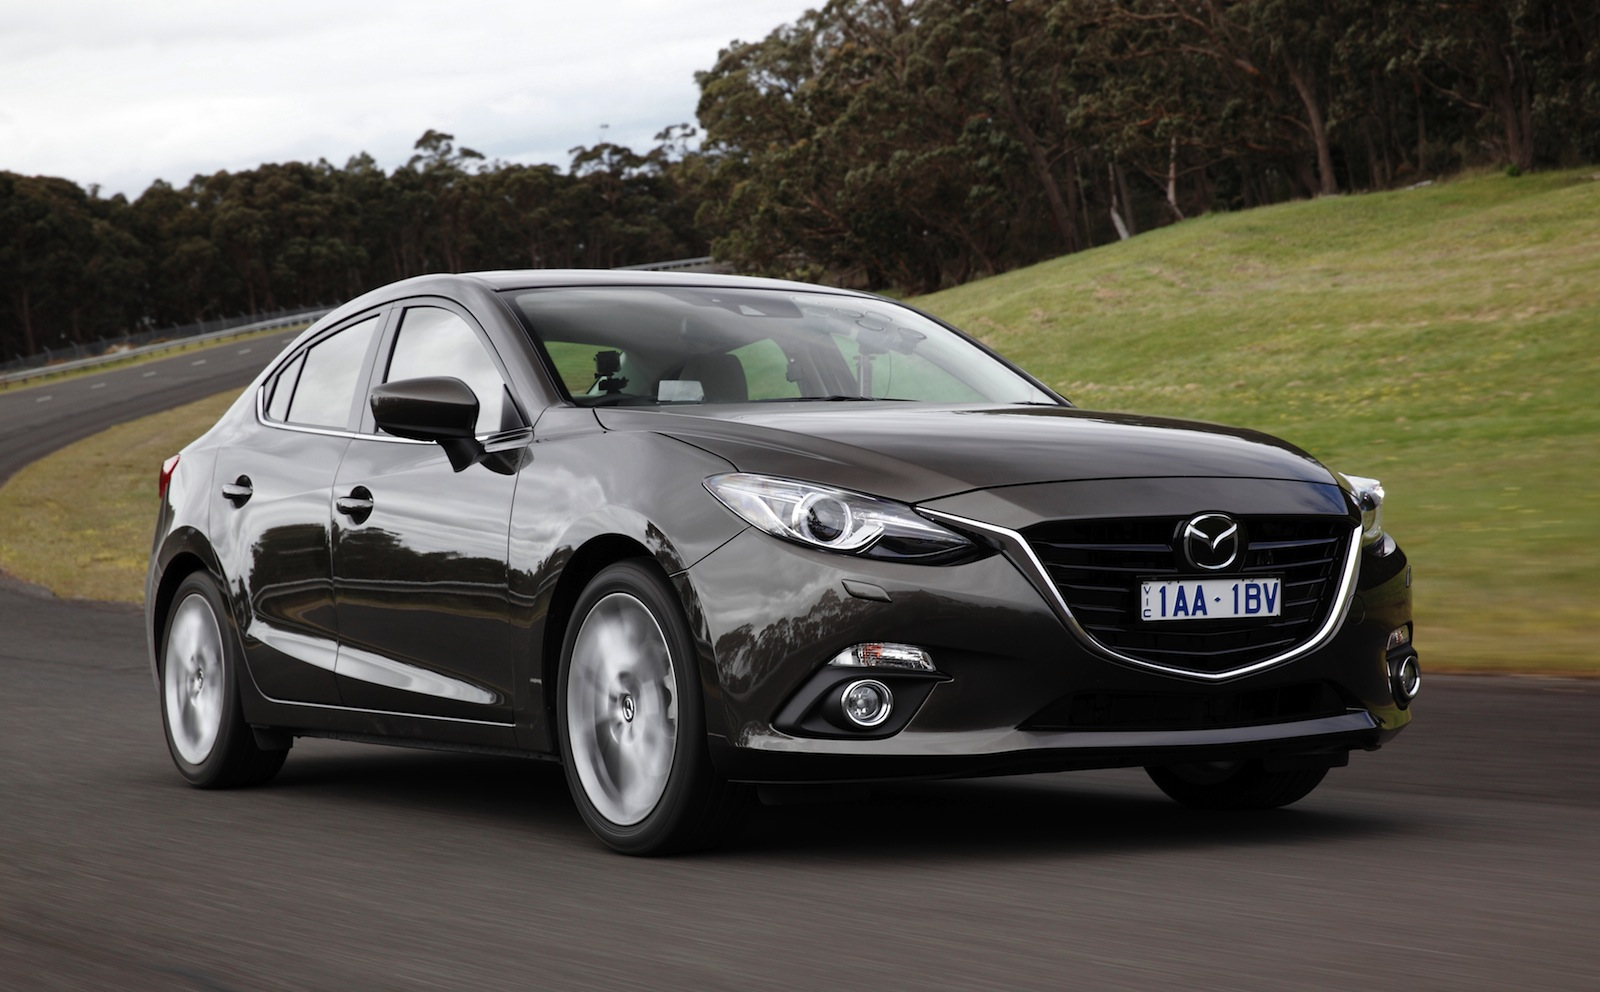 2014 mazda 3 v old mazda 3 comparison review caradvice. Black Bedroom Furniture Sets. Home Design Ideas